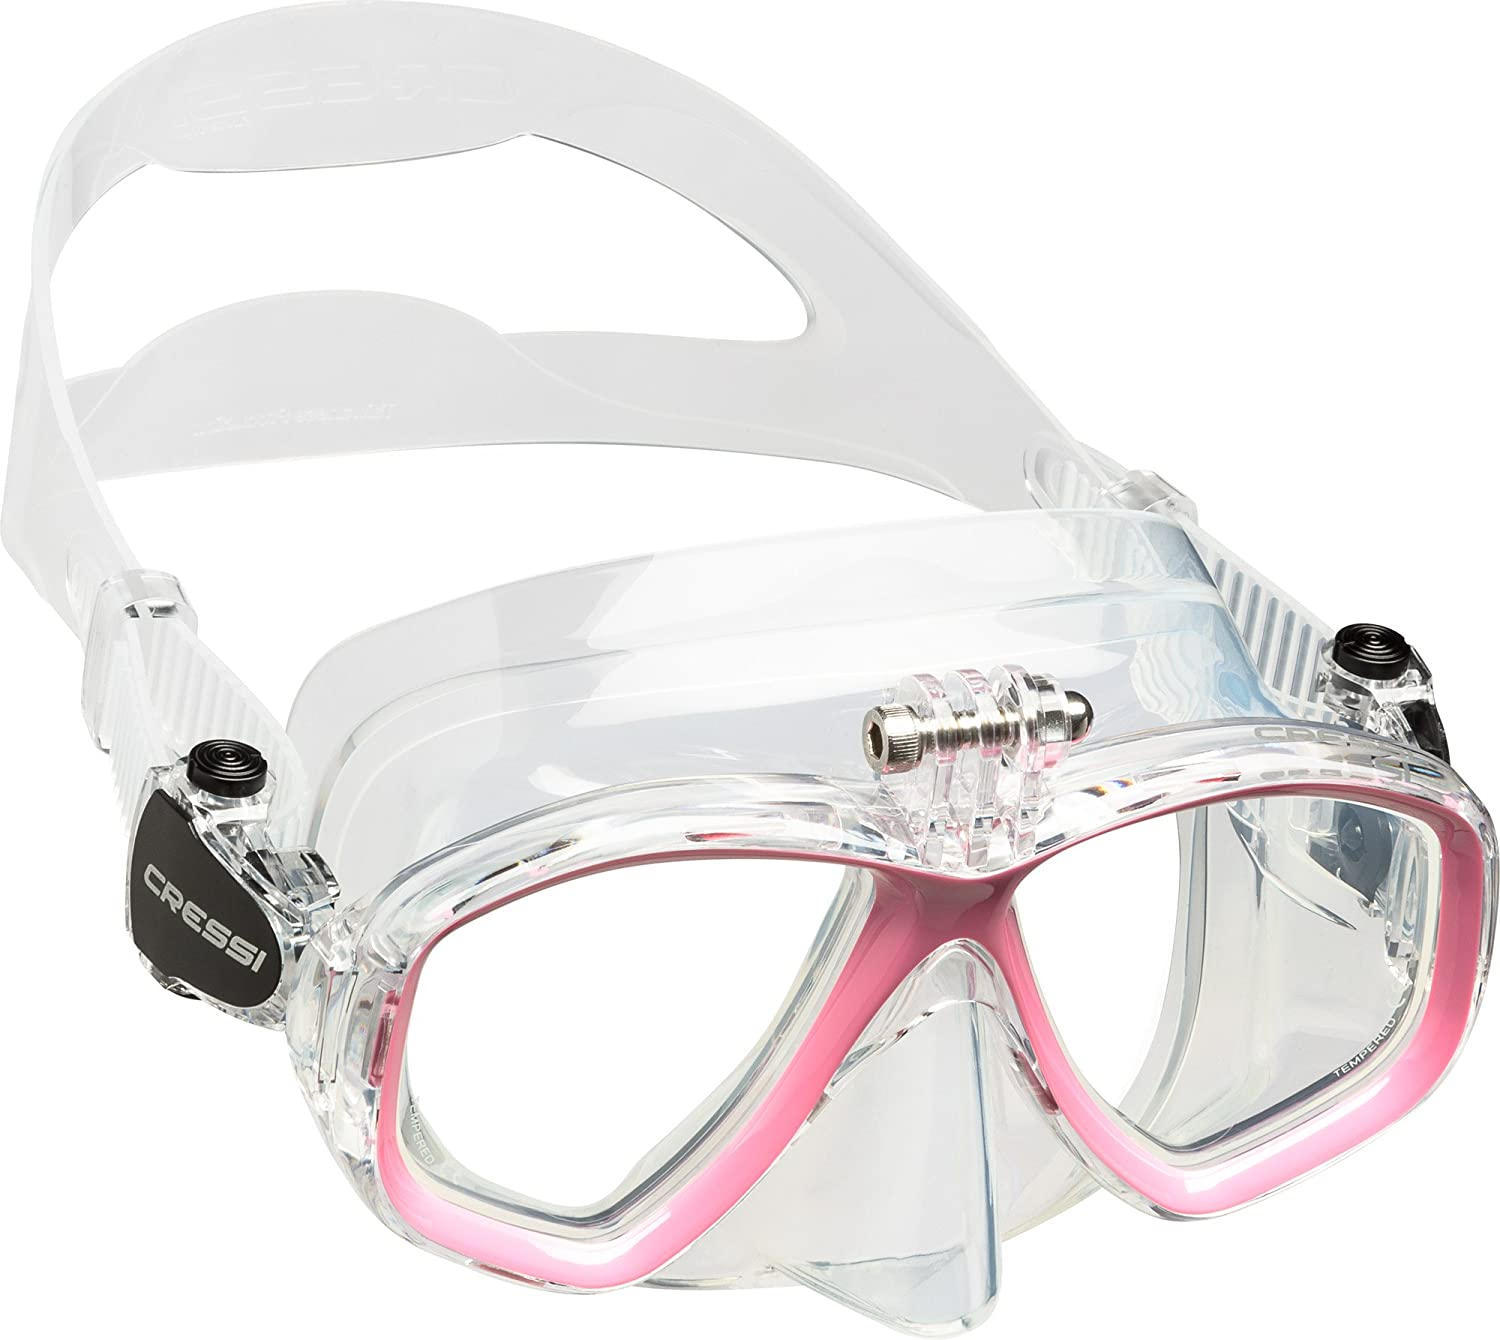 Cressi High Quality Diving//Snorkeling Mask with Action Cam Attack